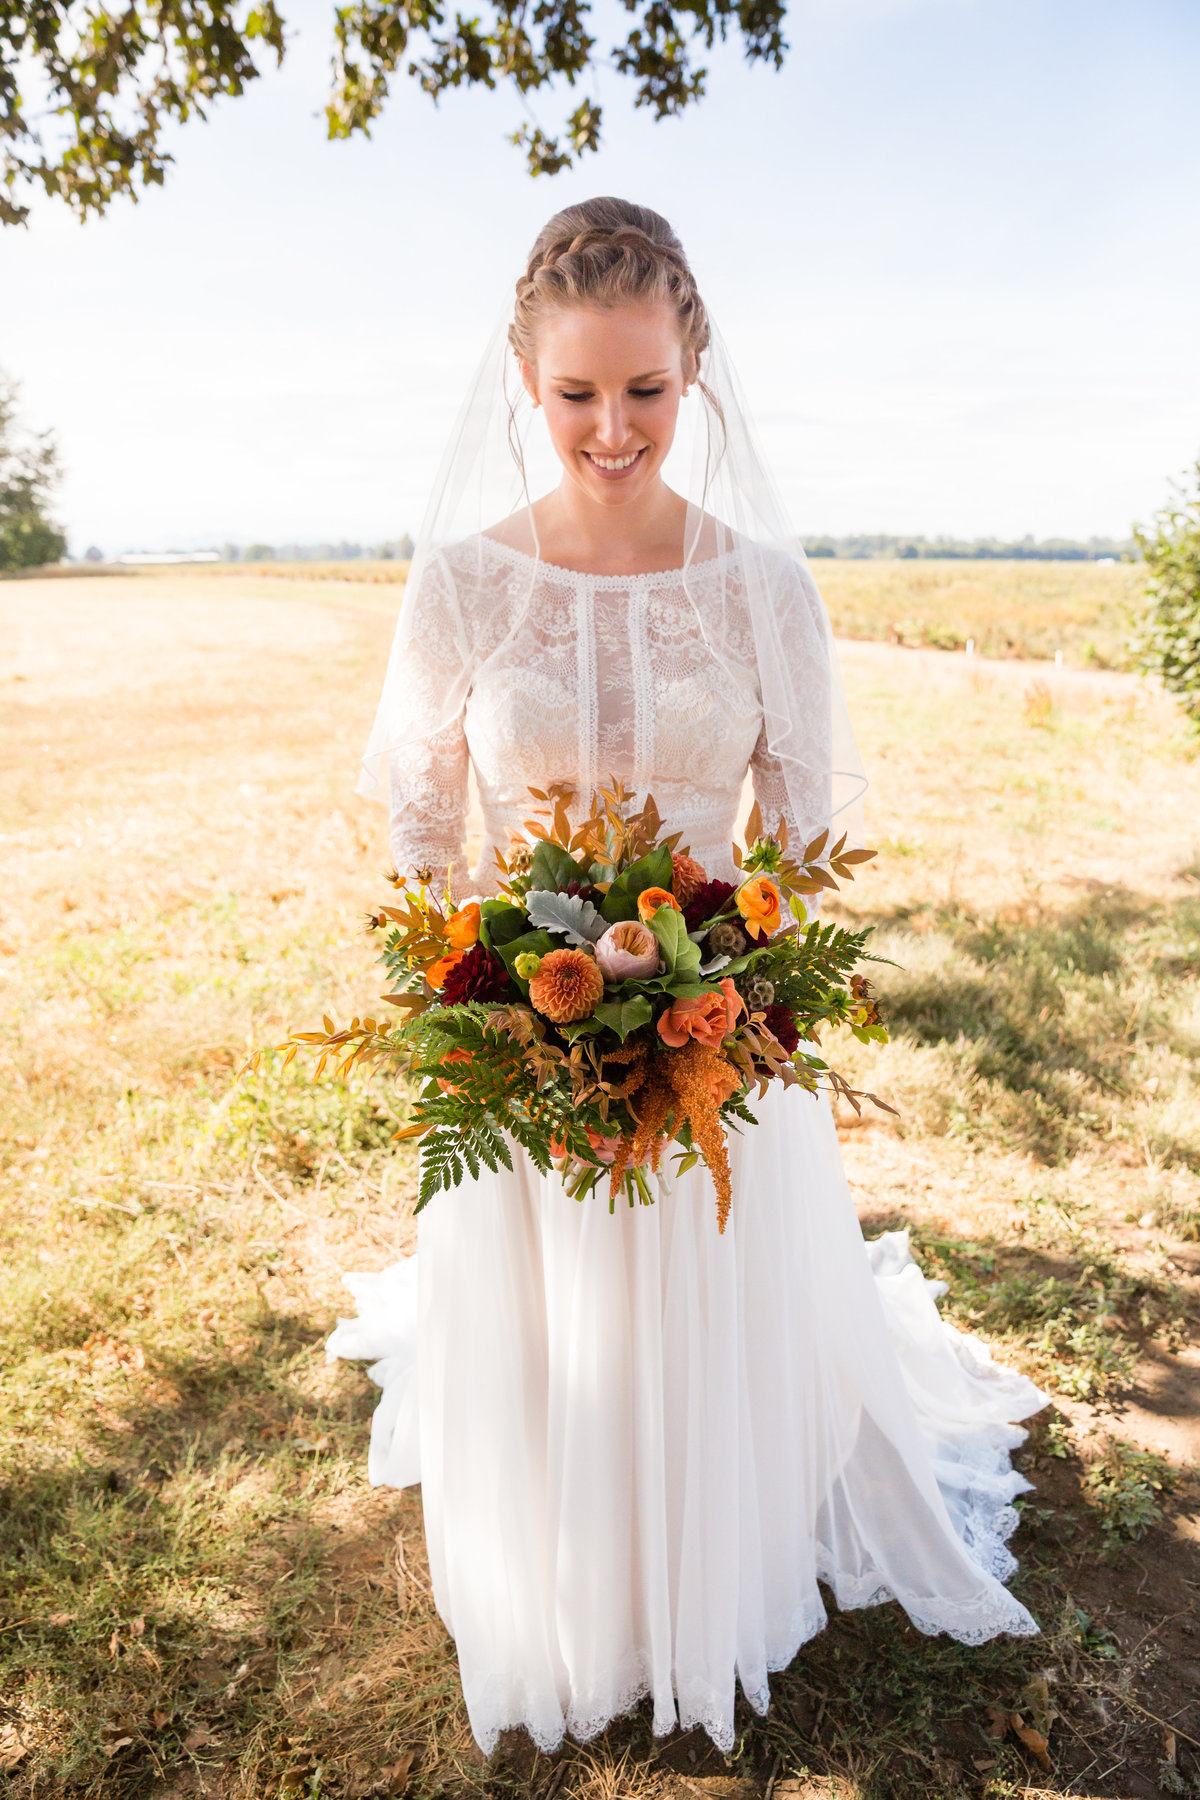 Outdoor Wedding Farm Dress Flowers Country 2